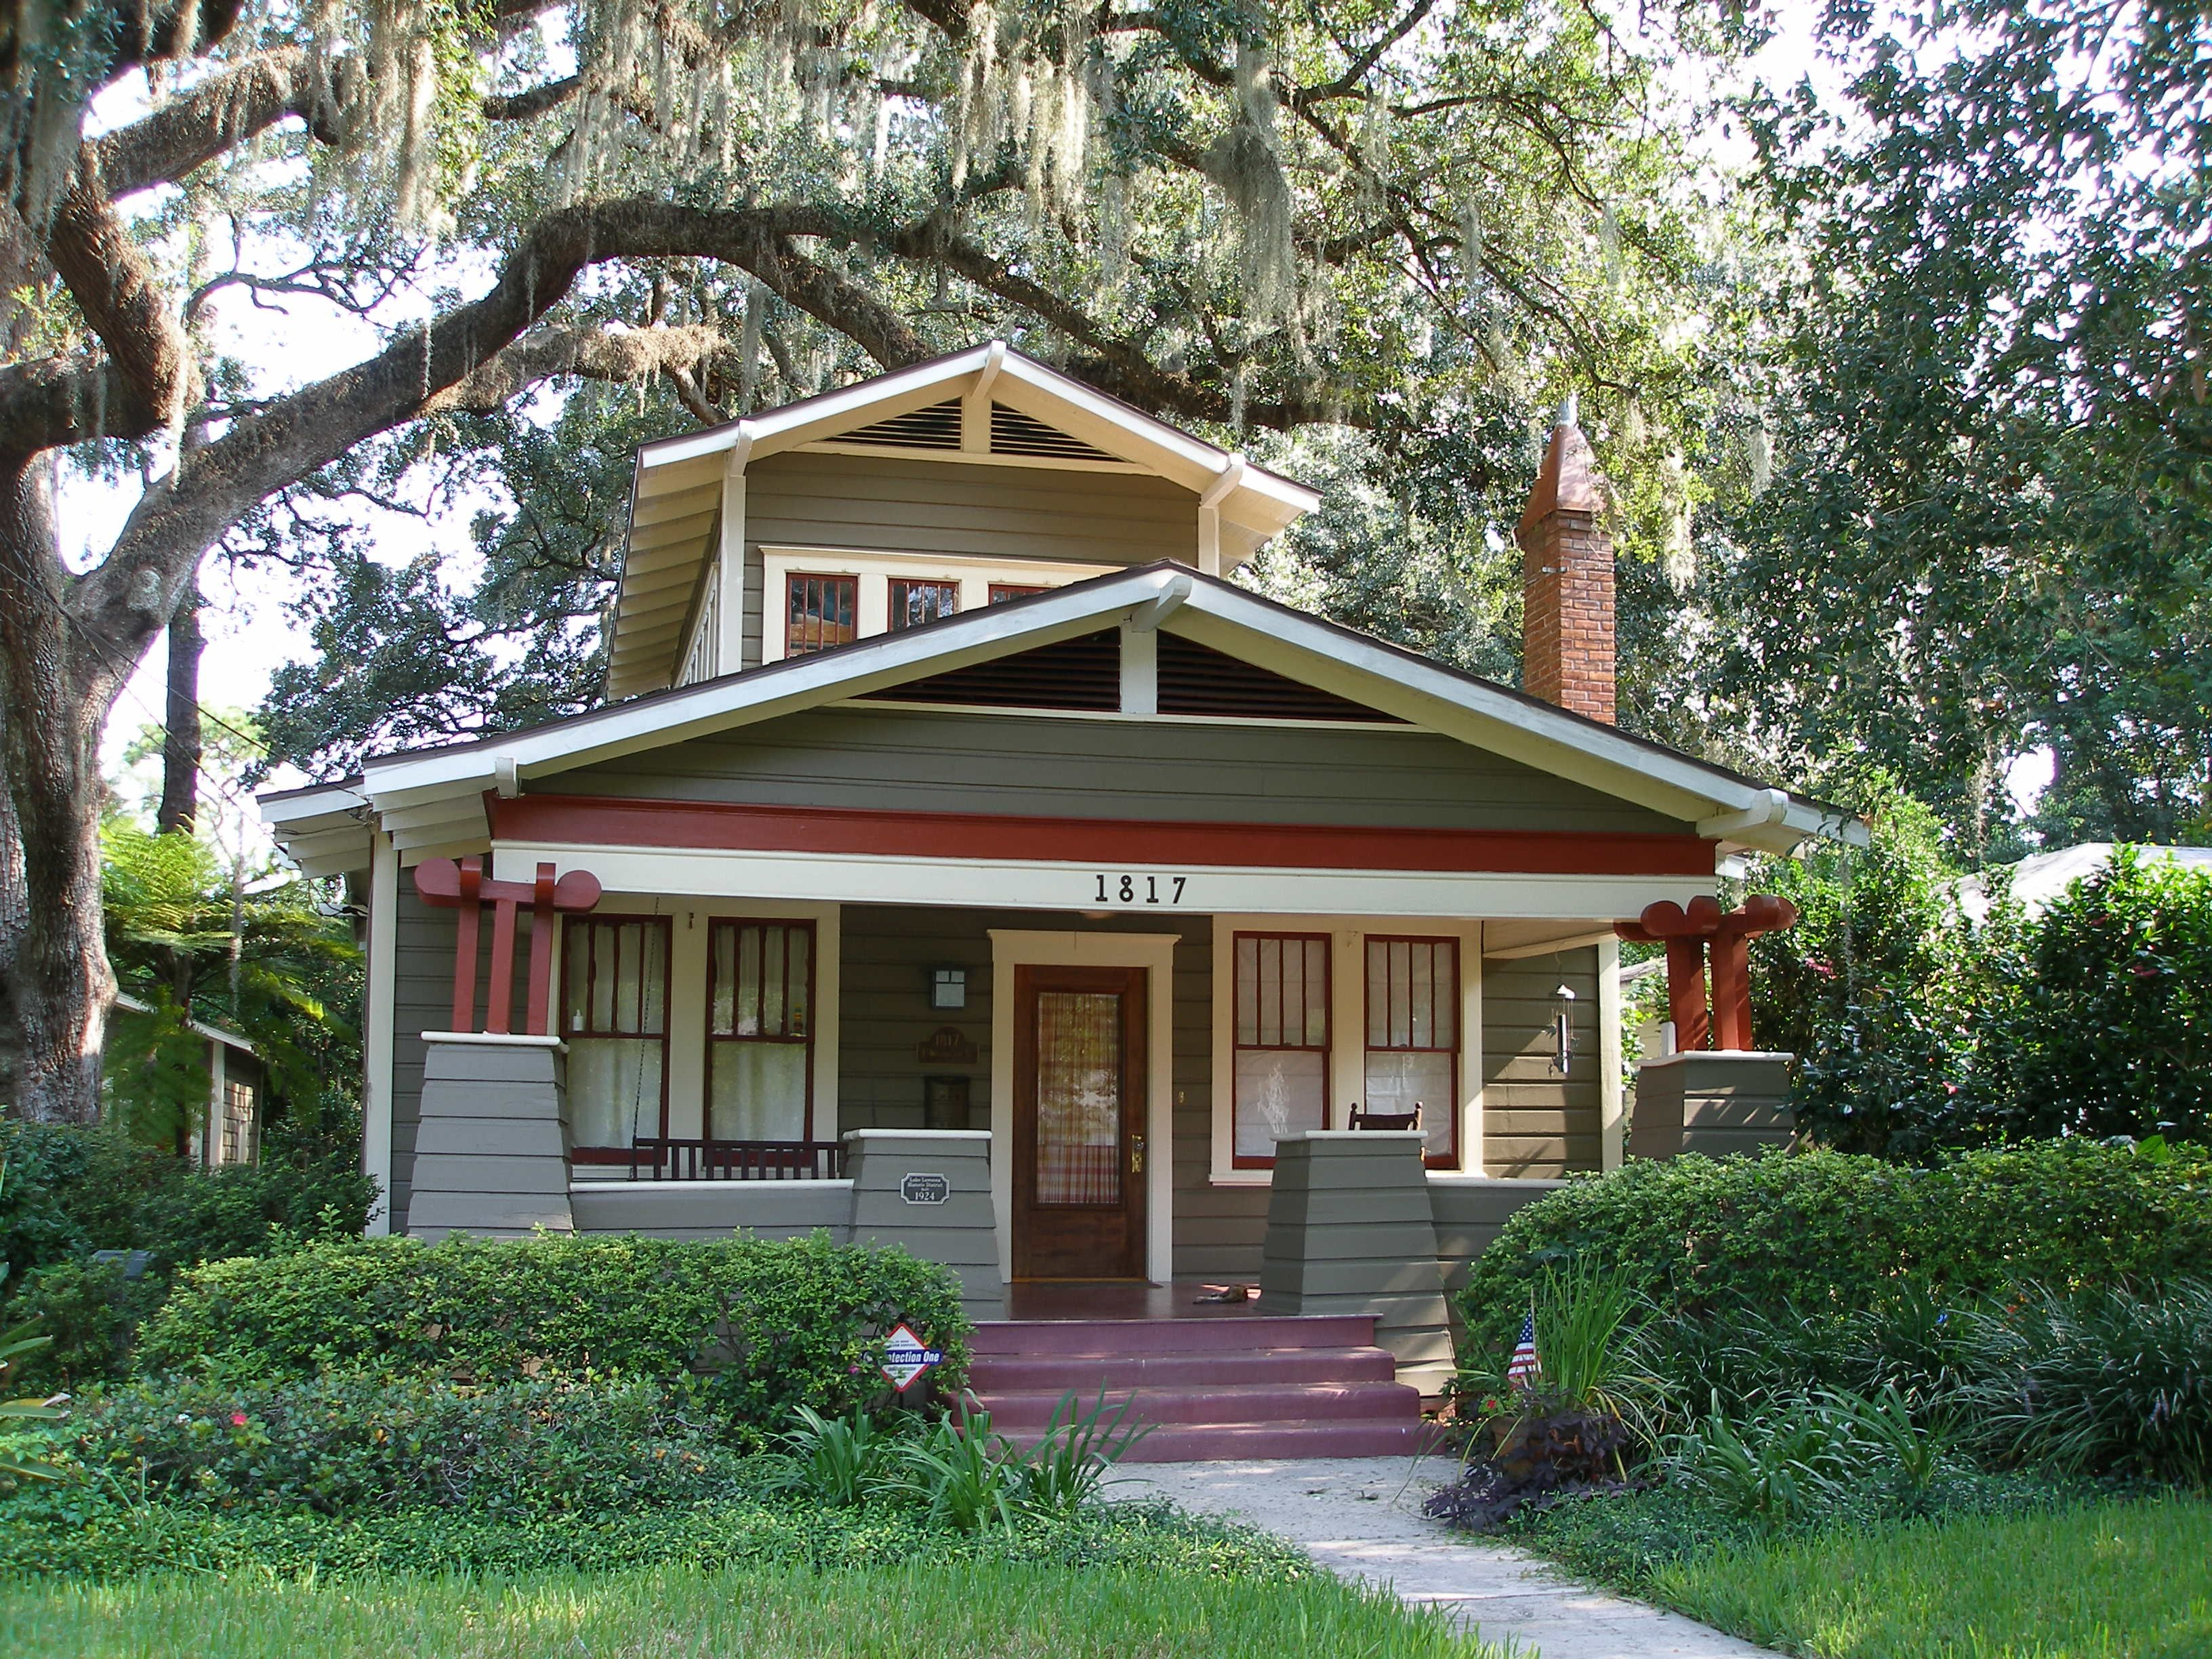 Orlando Historic Districts - Lake Lawsona Craftsman